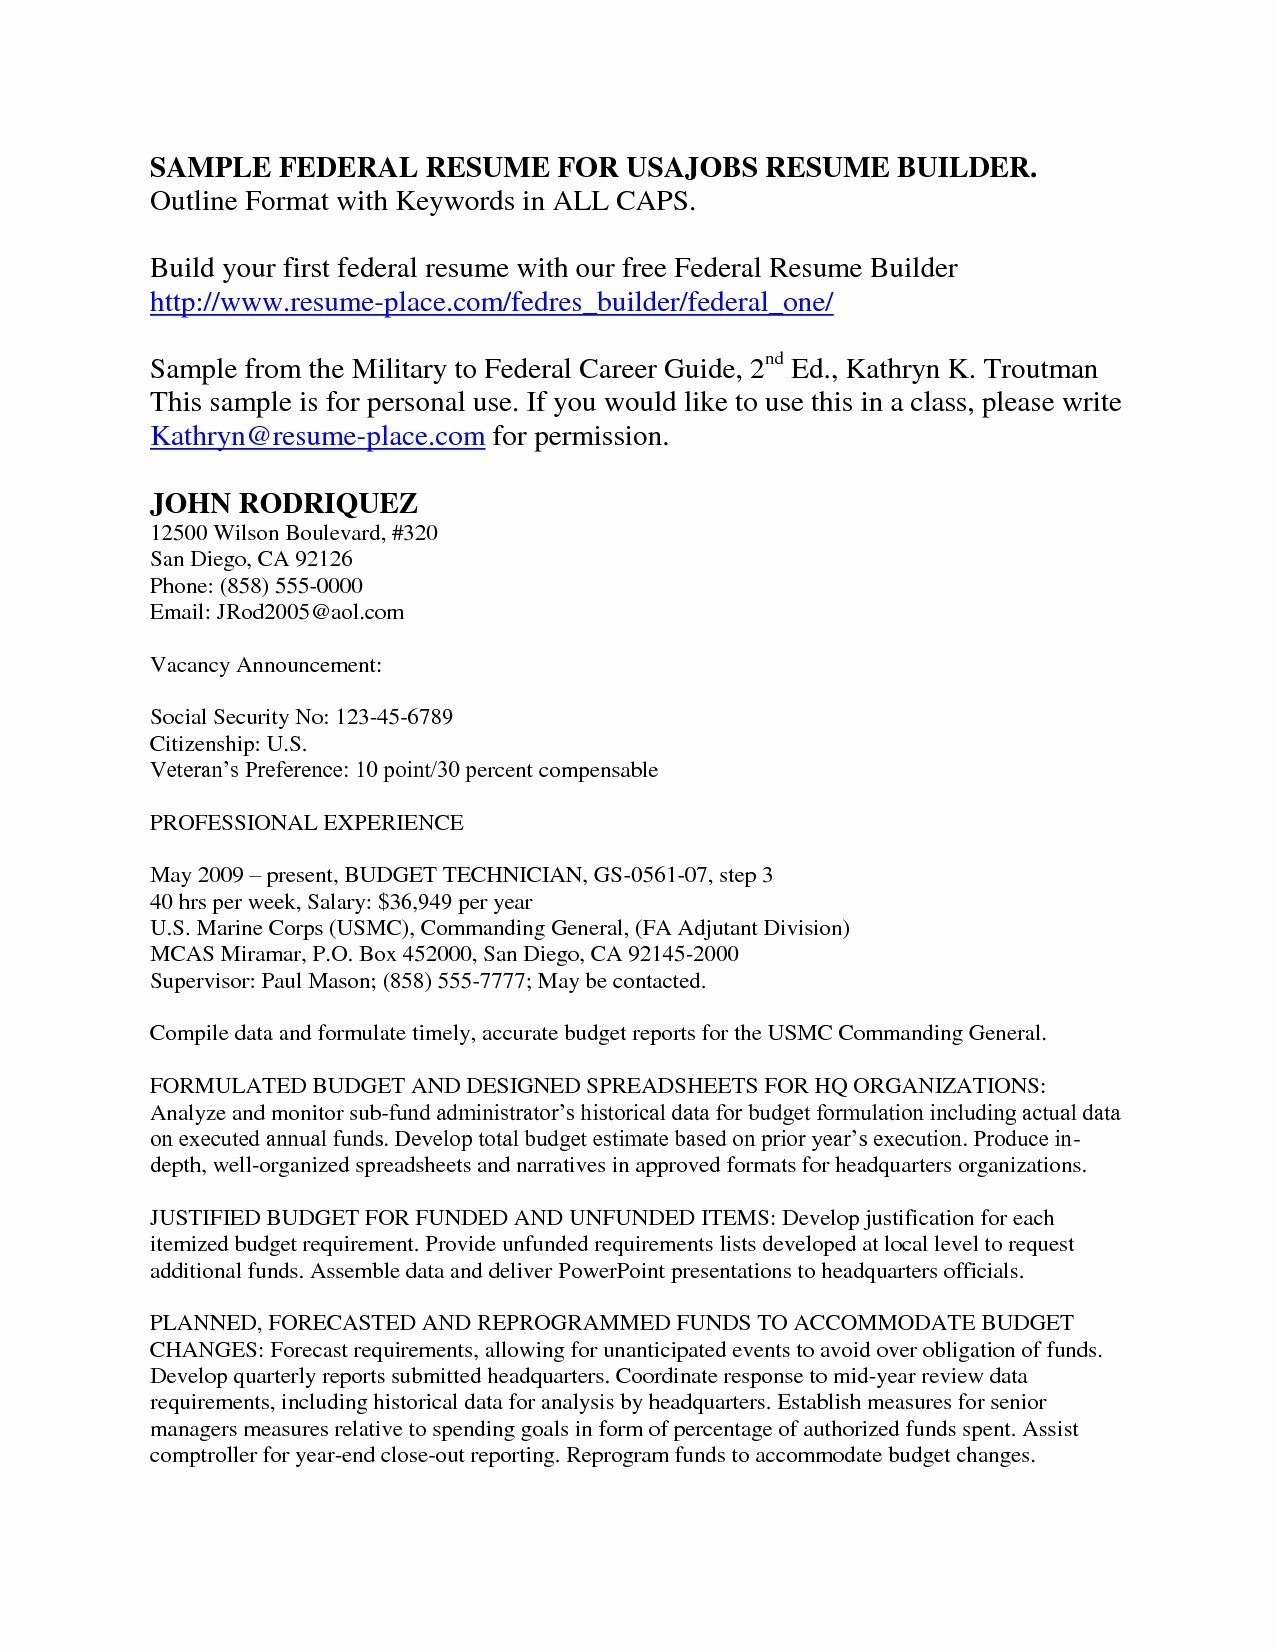 San Diego Resume - Resume format Job that Can Improve their Vocation Resume Insight